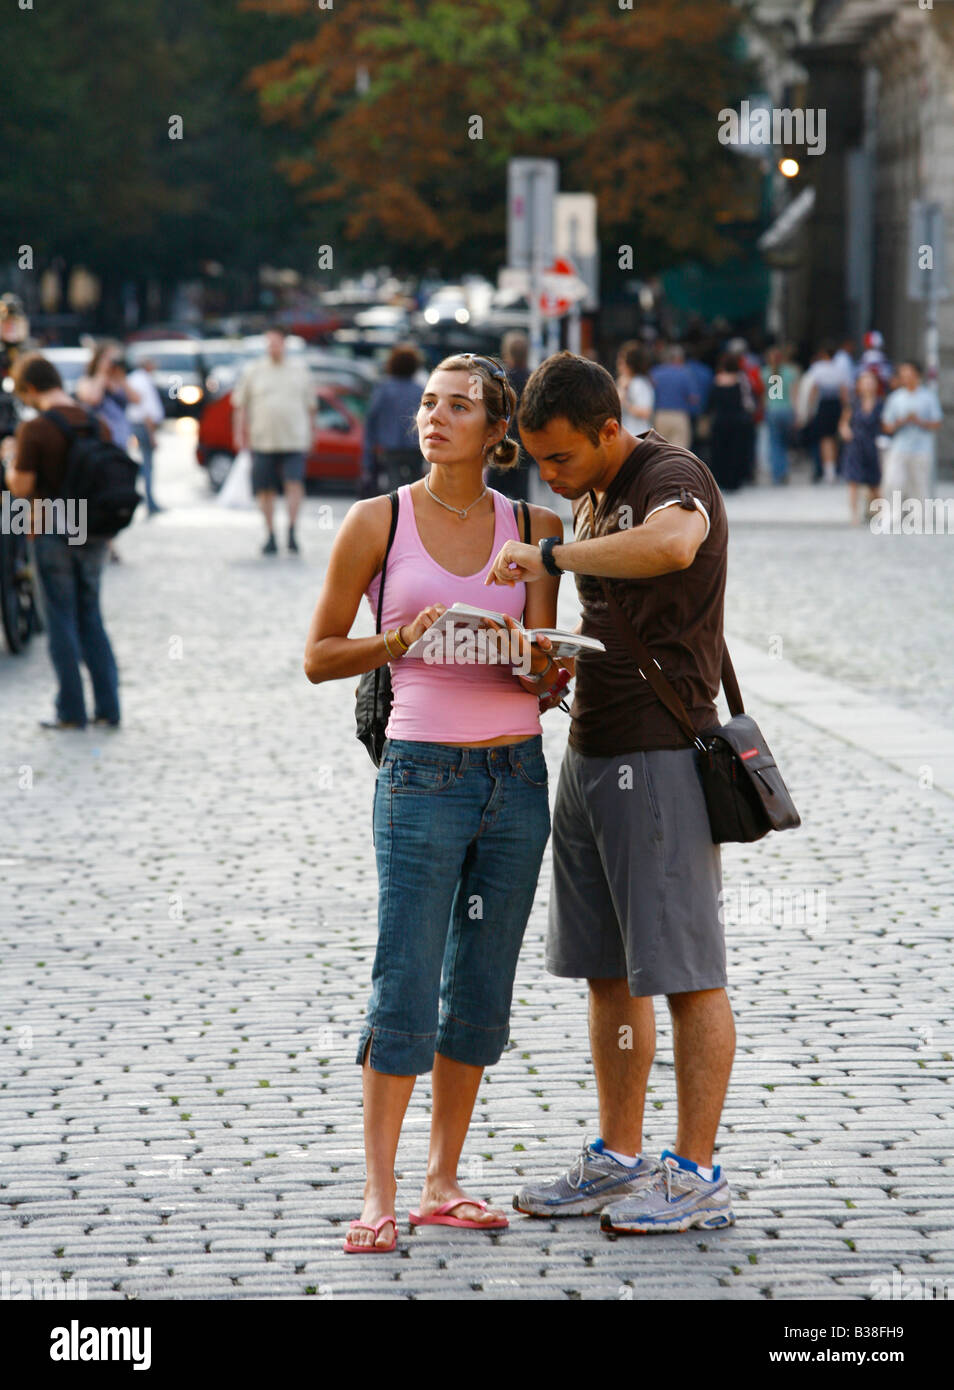 Aug 2008 - Tourist in the Old Town Square looking at a map Prague Czech Republic - Stock Image